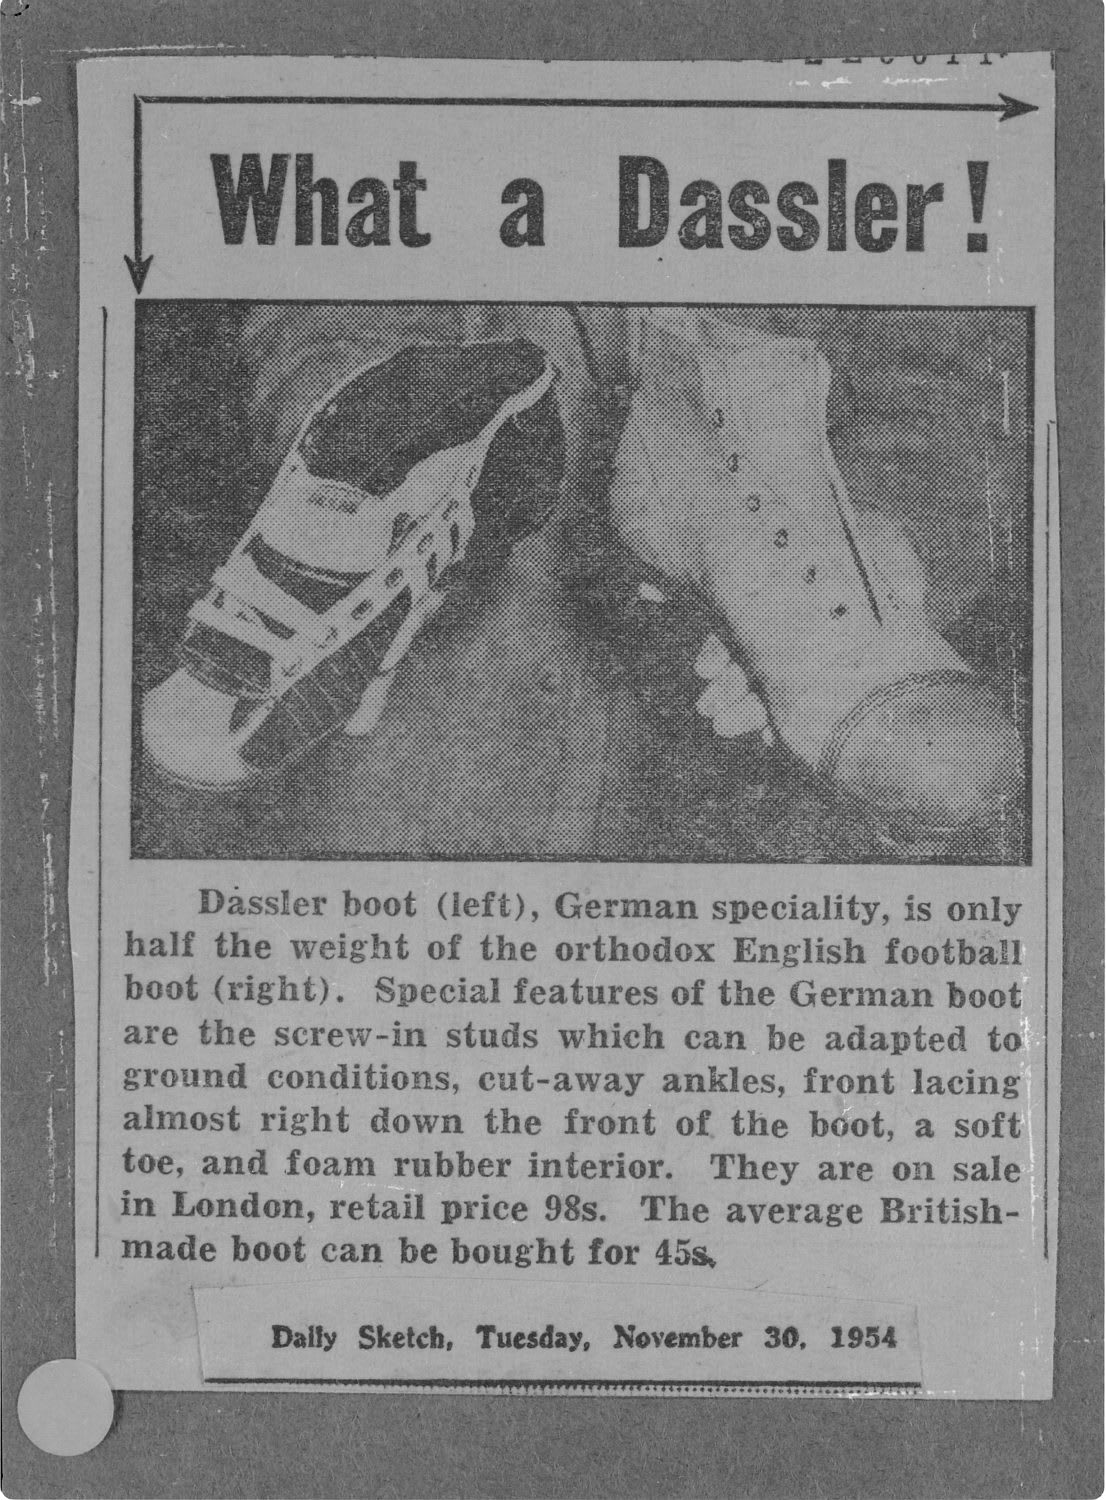 Old fashioned newspaper article with What a Dassler! as headline, Adolf, Dassler, Adi, adidas, sports, shoes, shoemaker, history, archive